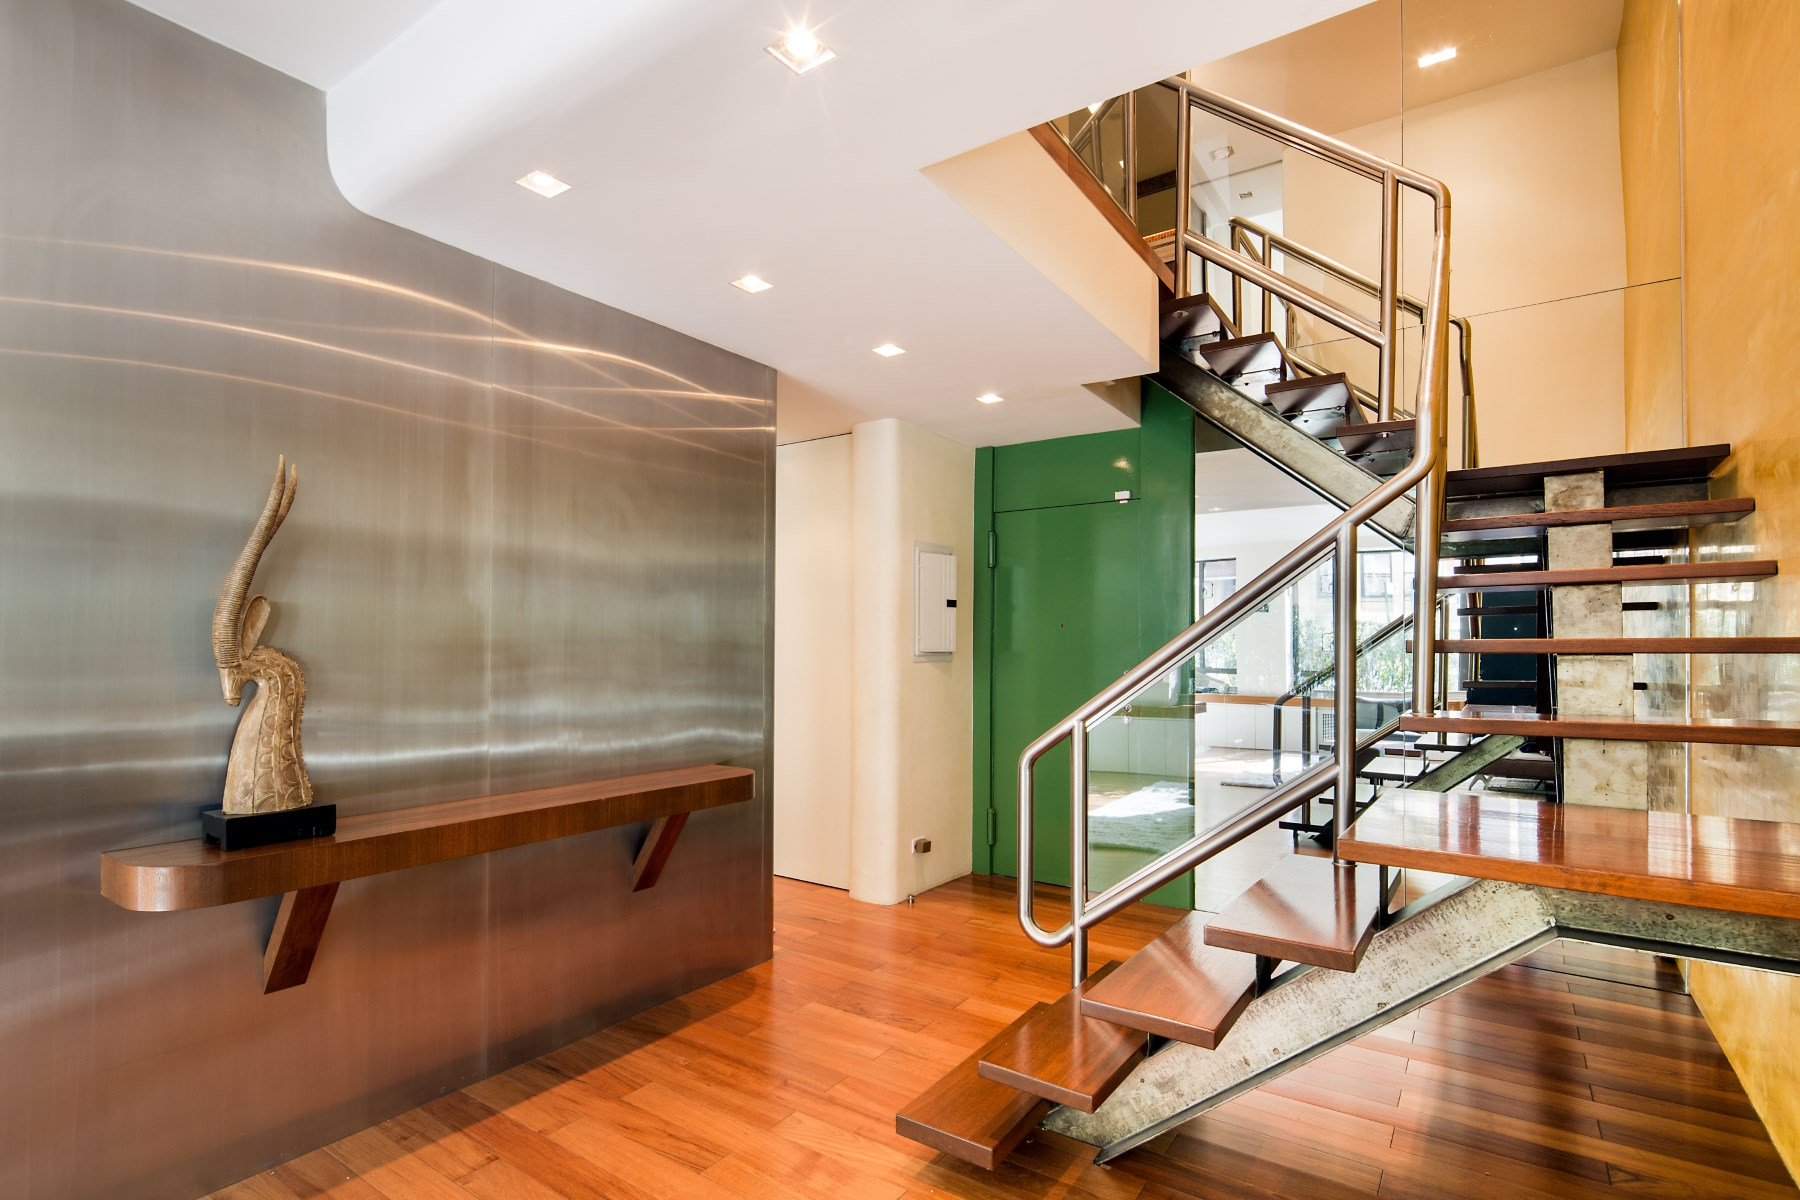 Co-op for Sale at 333 East 69th Street 333 East 69th Street TH10 Upper East Side, New York, New York, 10021 United States